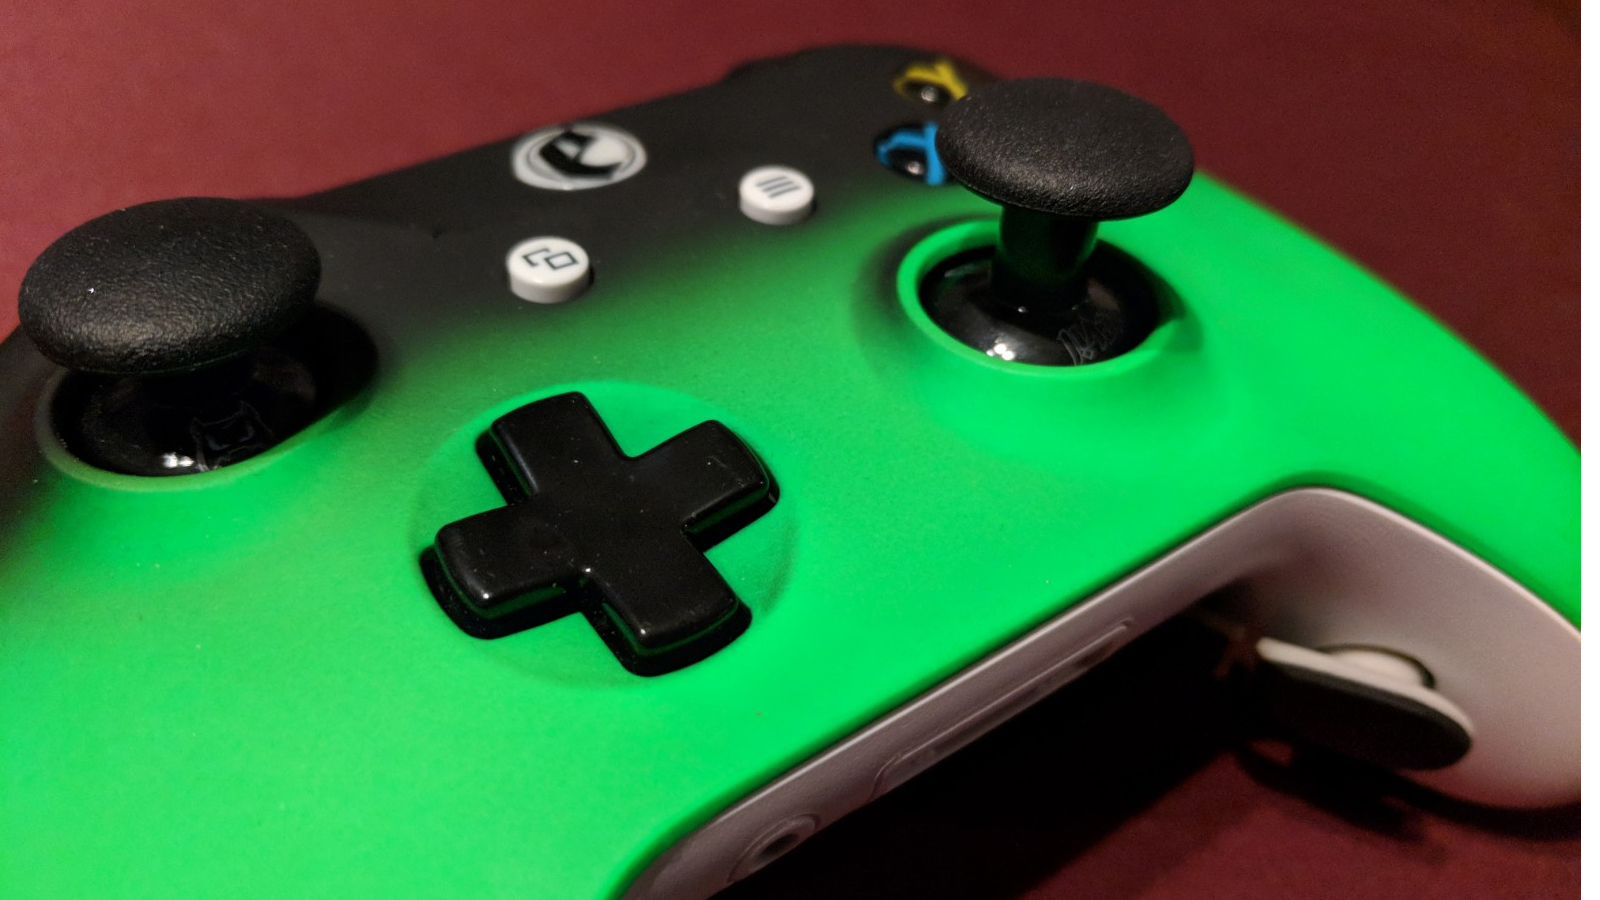 evil shift-xbox one controller